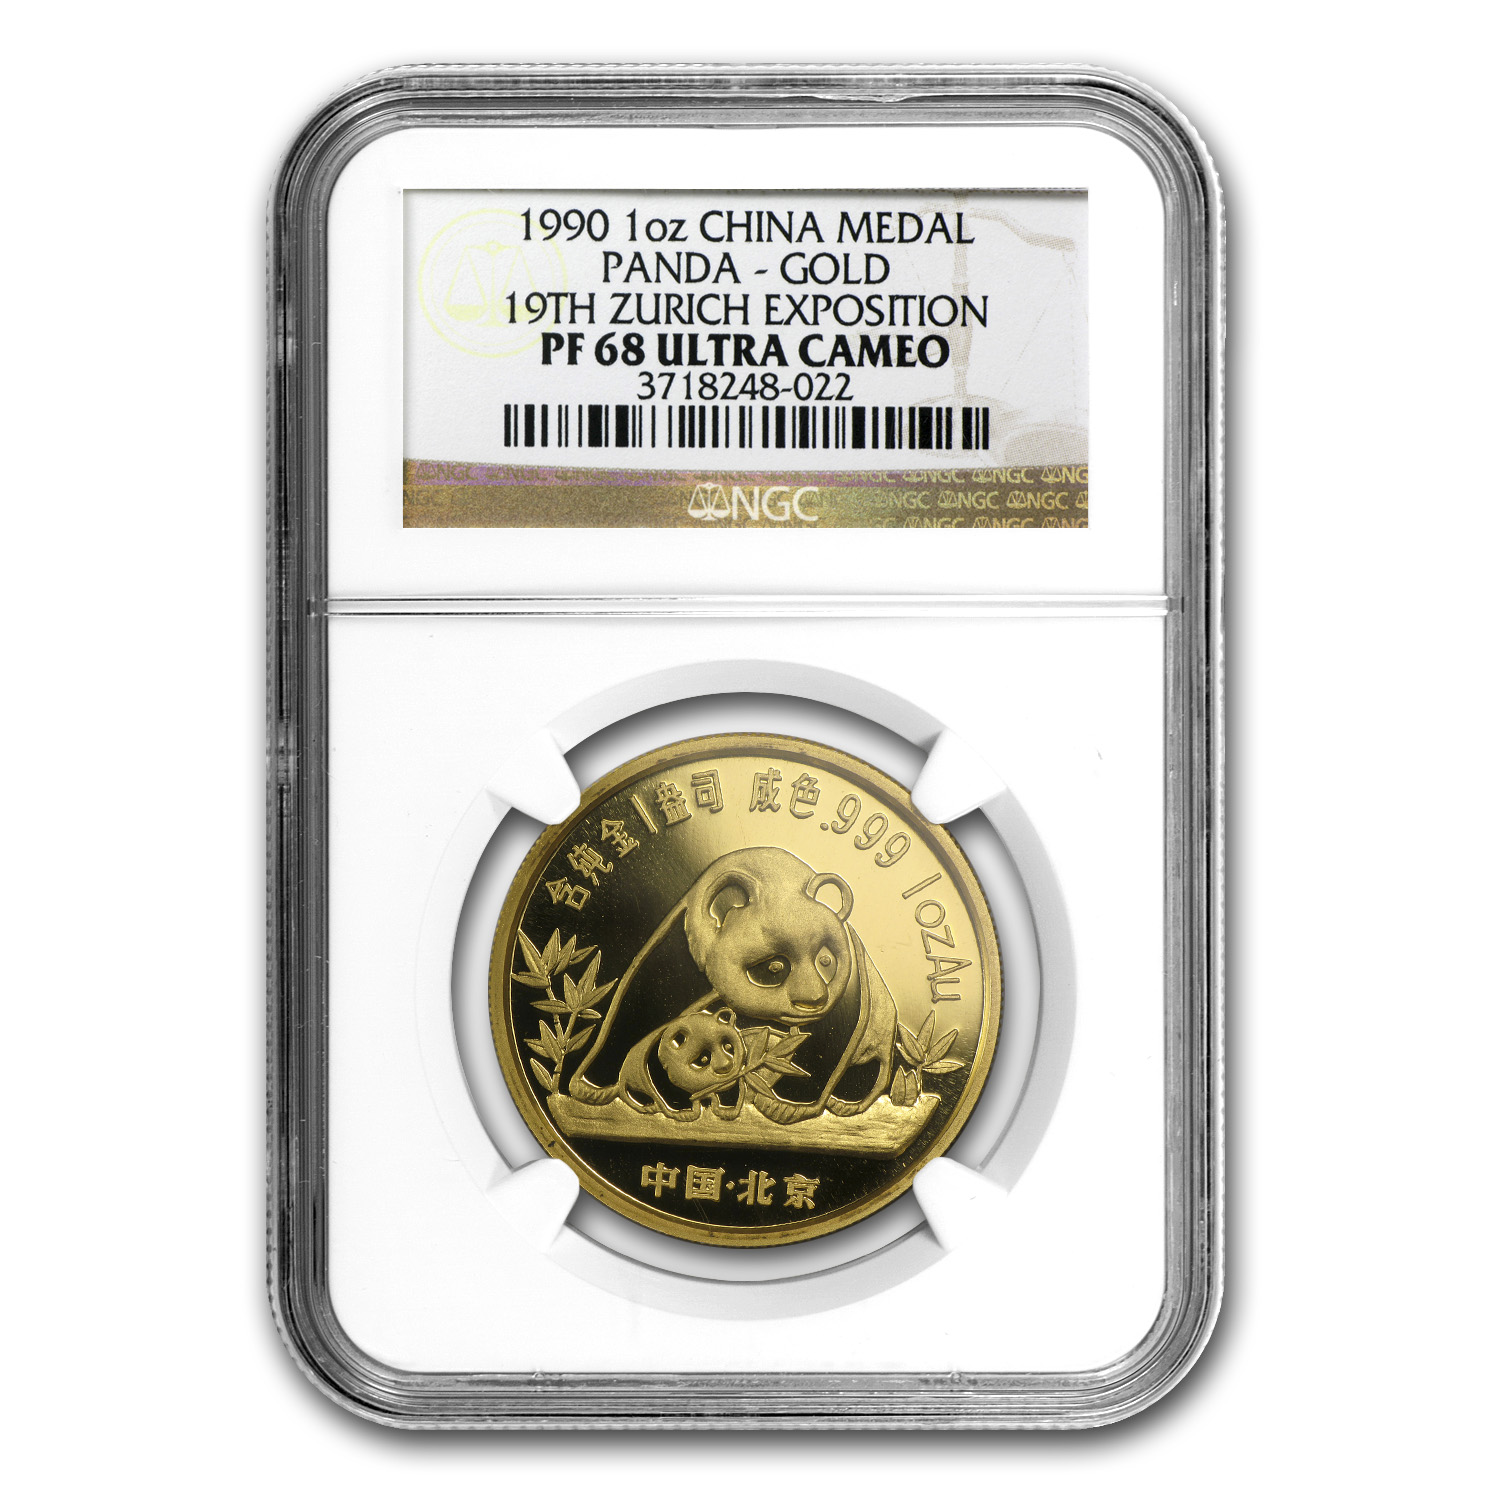 1990 1 oz Gold Chinese Panda PF-68 NGC (19th Zurich Expo Medal)